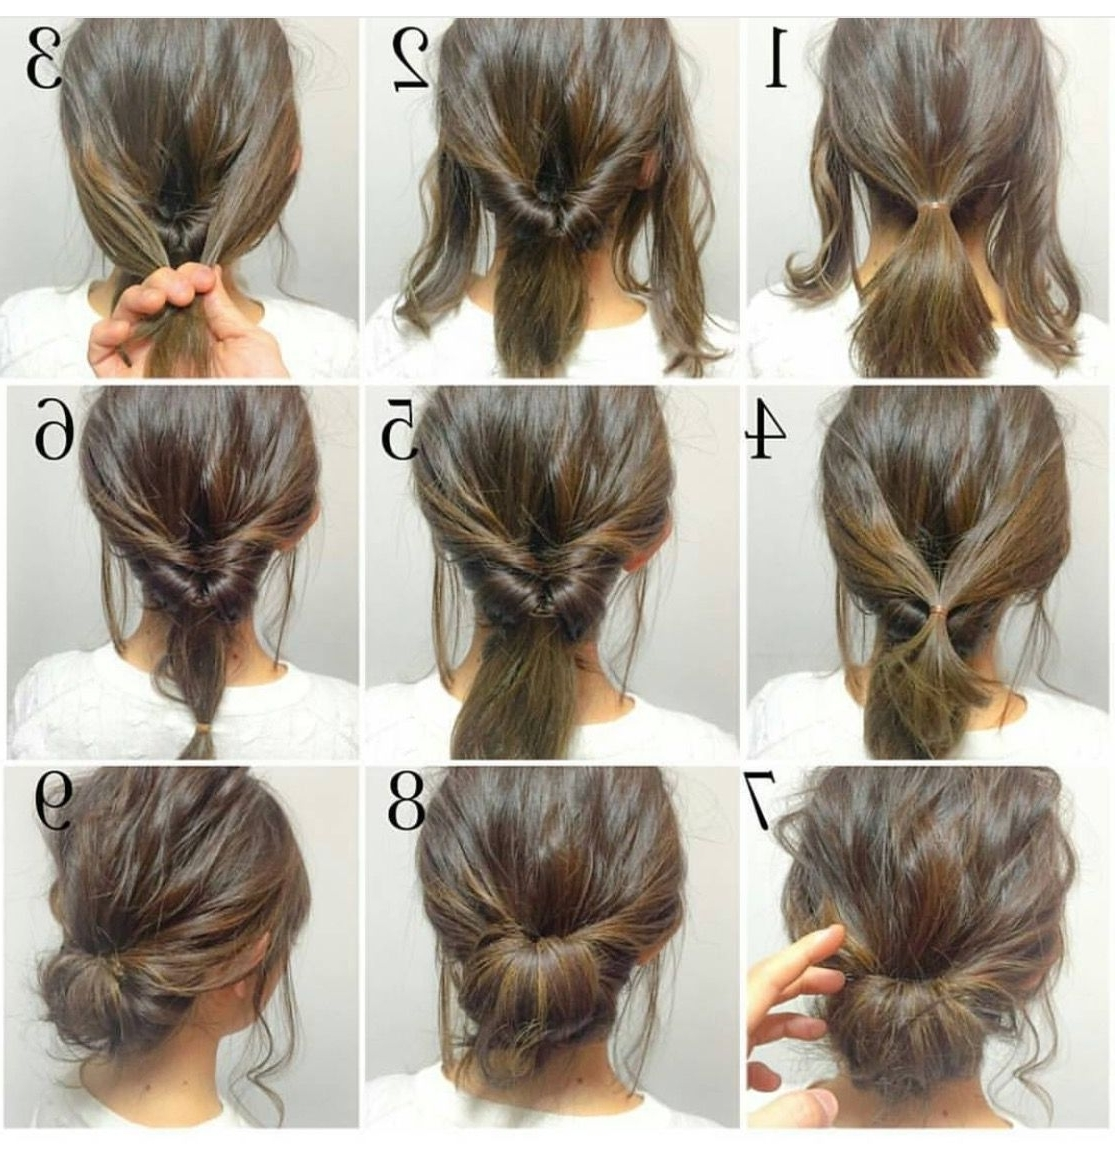 4 Messy Updos For Long Hair | Hairz | Pinterest | Updos, Hair Style Regarding Quick Messy Bun Updo Hairstyles (View 5 of 15)